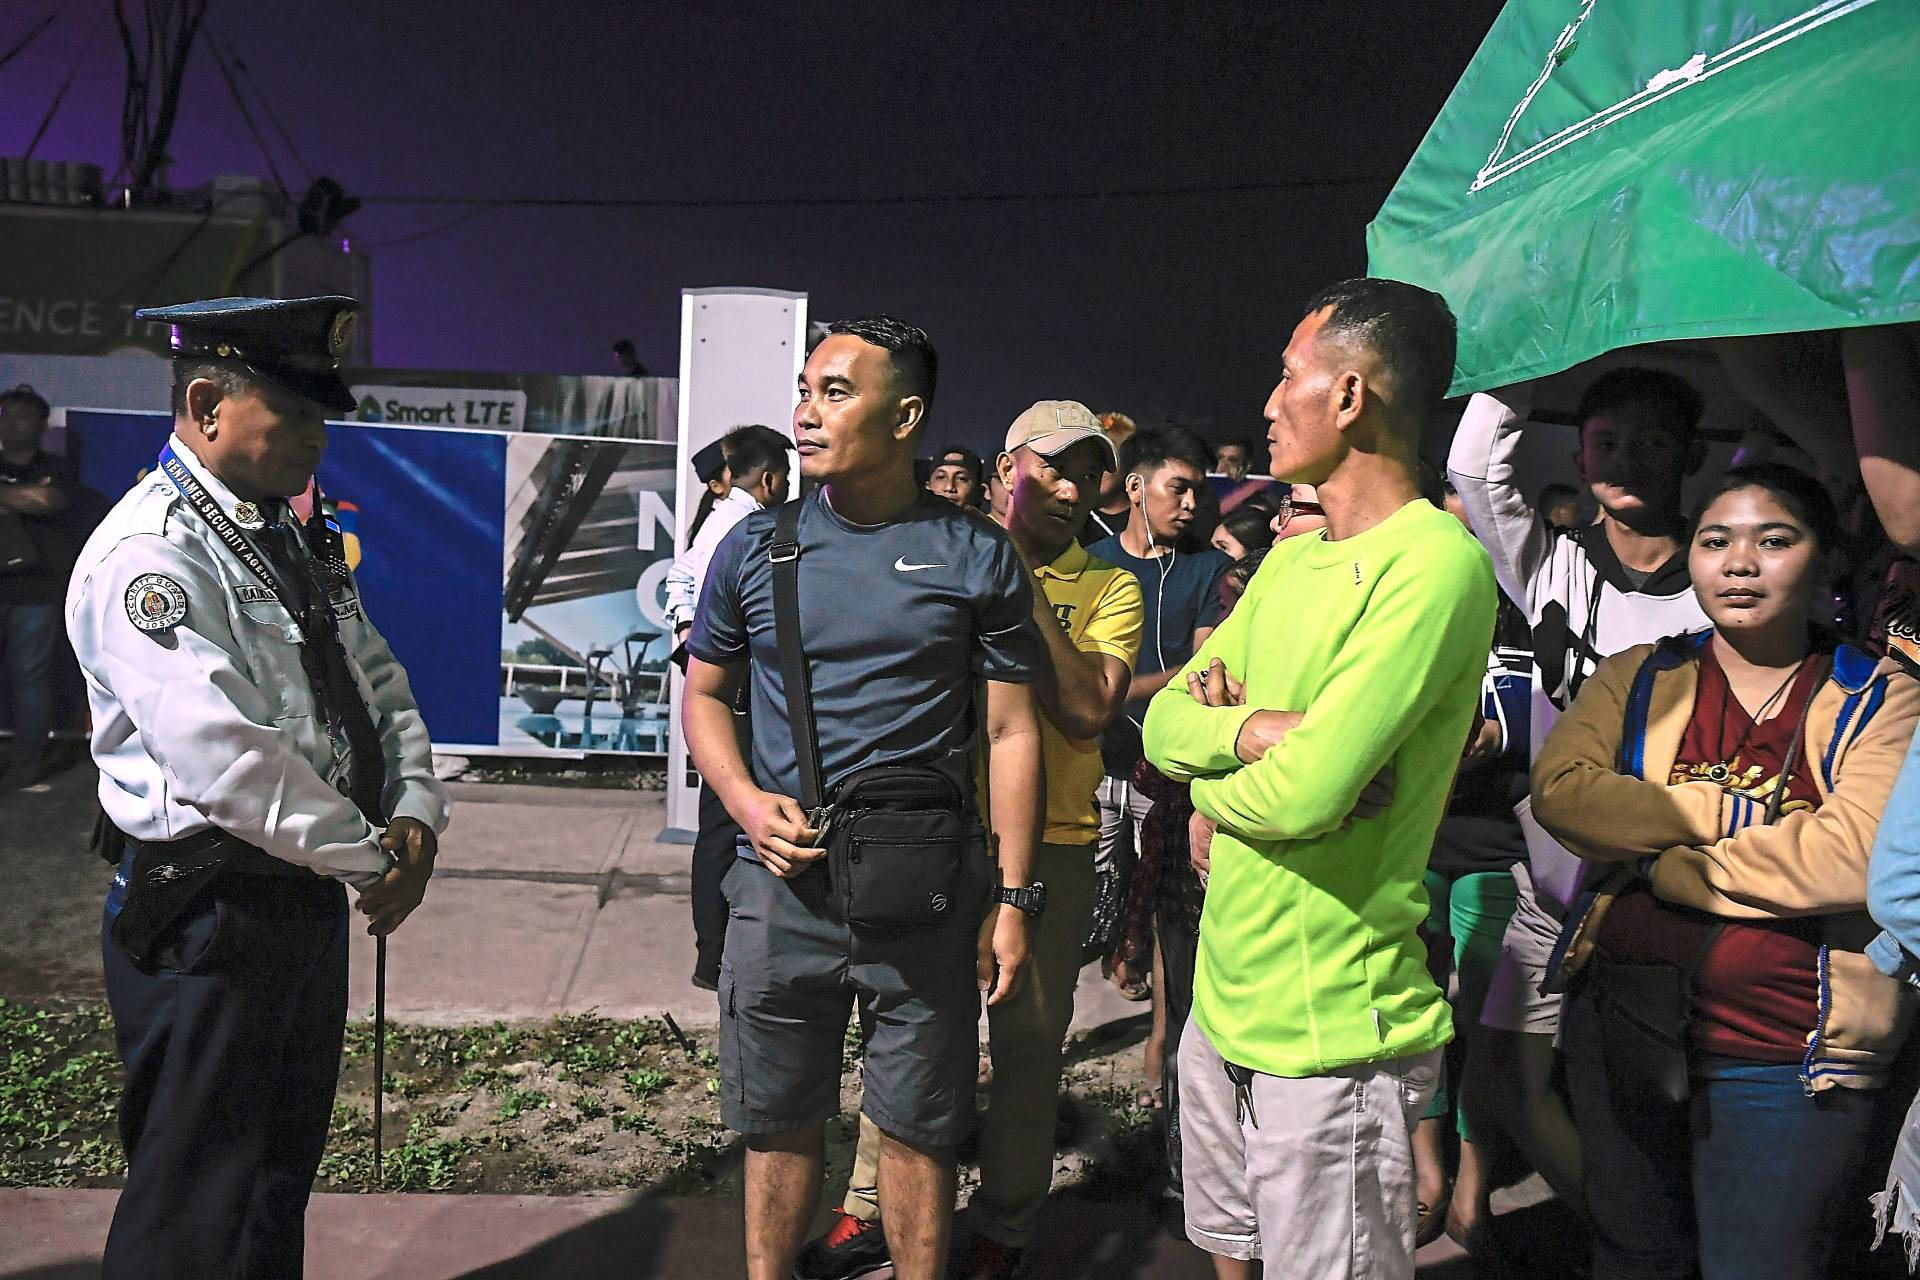 So close yet so far: Hundreds of members of the public were blocked from entering the stadium to watch the SEA Games opening ceremony. Security personnel said that they were acting on orders from higher authorities. —Bernama